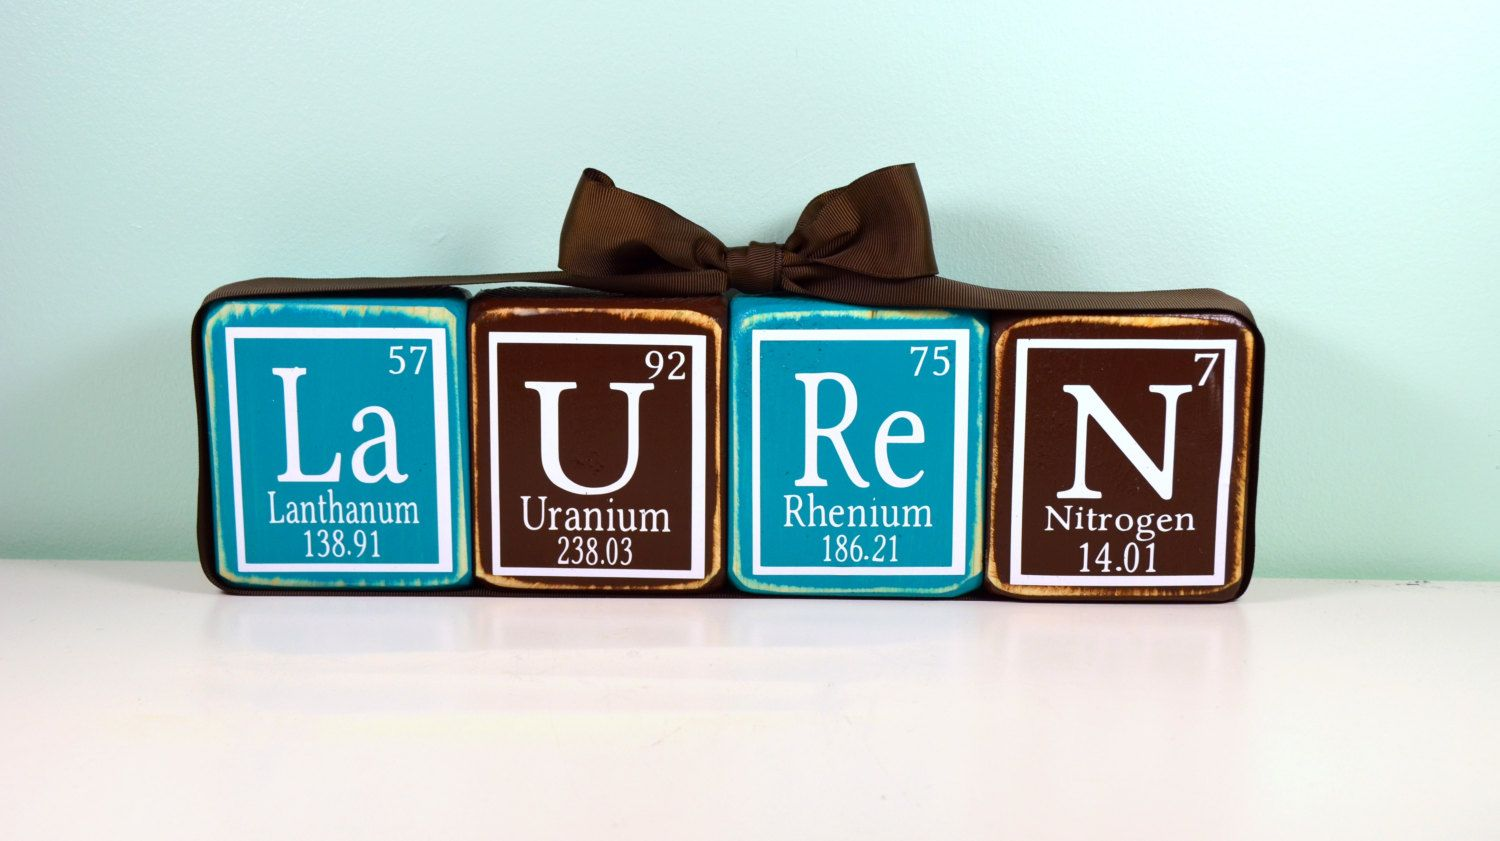 Chemistry periodic table of the elements wood block set chemistry periodic table of the elements wood block set gamestrikefo Choice Image